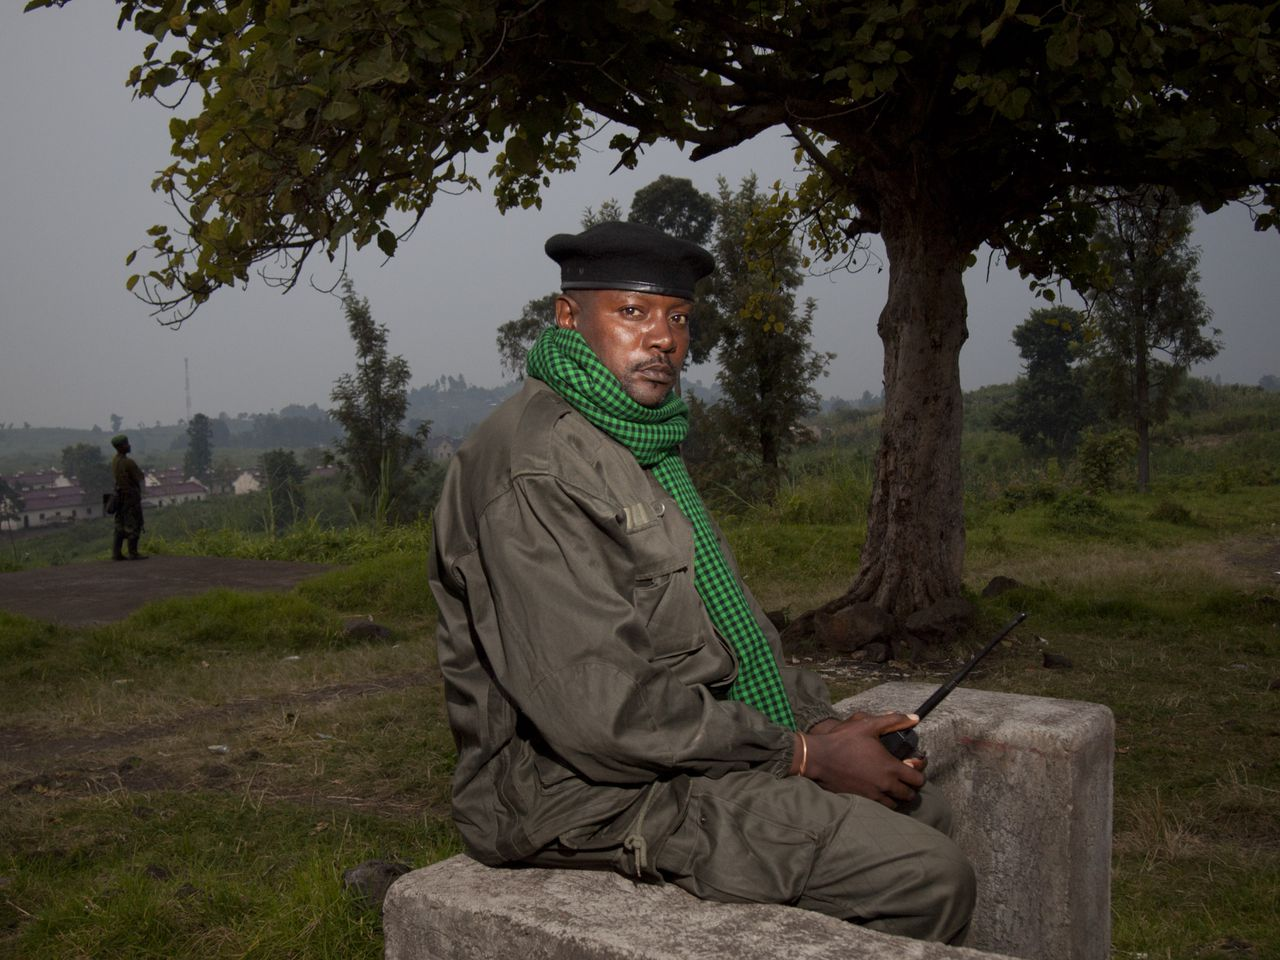 An M23 rebel soldier poses at a FARDC base taken yesterday in Rumangabo on July 9, 2012. Congolese mutineers on July 9, 2012 pulled out of the key eastern town of Rutshuru, near the borders with Uganda and Rwanda, a day after seizing it. The M23 movement -- a group of former Tutsi rebels who had been integrated in the regular army in 2009 -- has been battling Democratic Republic of Congo troops since May. In recent days, the rebels had seized several towns in the troubled Nord Kivu province, including Rutshuru, which lies some 20 kilometres (12 miles) from the Ugandan border, half-way between Lake Edward and Lake Kivu. AFP PHOTO/Michele Sibiloni